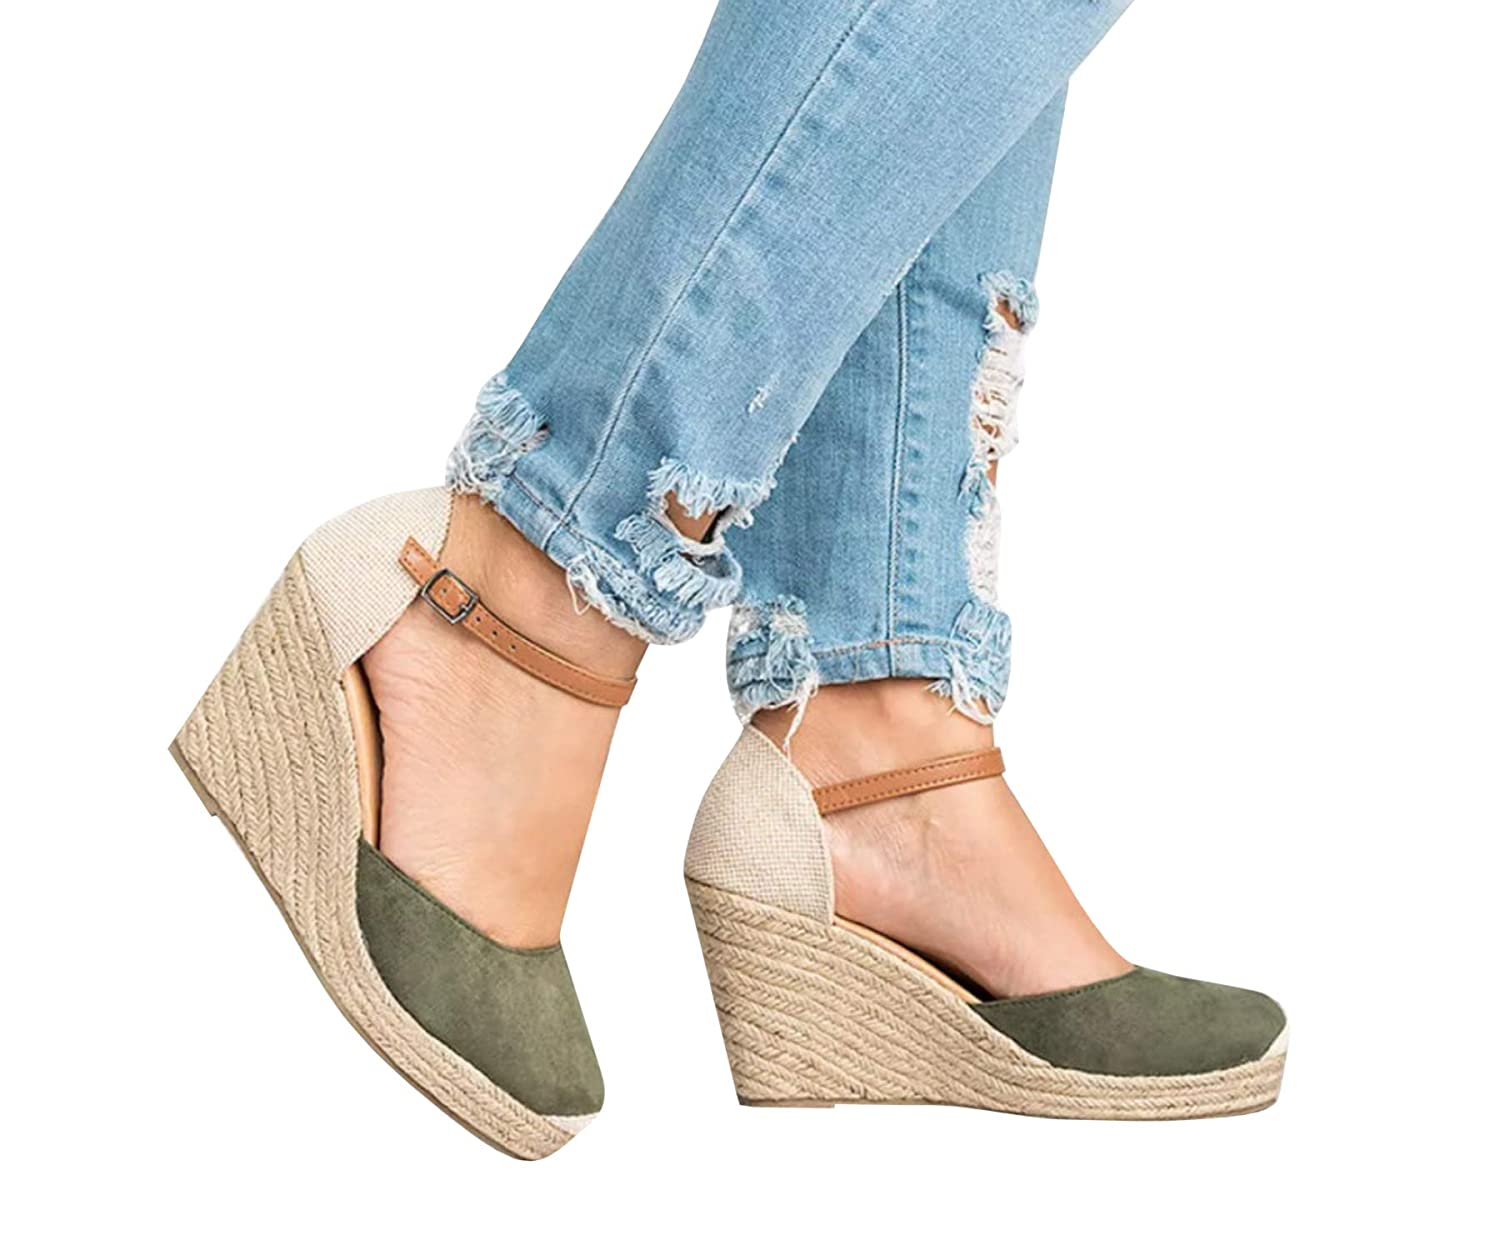 fadf58977f1a Amazon.com  Fashare Womens Closed Toe Espadrilles Platform Heel Wedge Shoes Ankle  Strap Sandals  Shoes